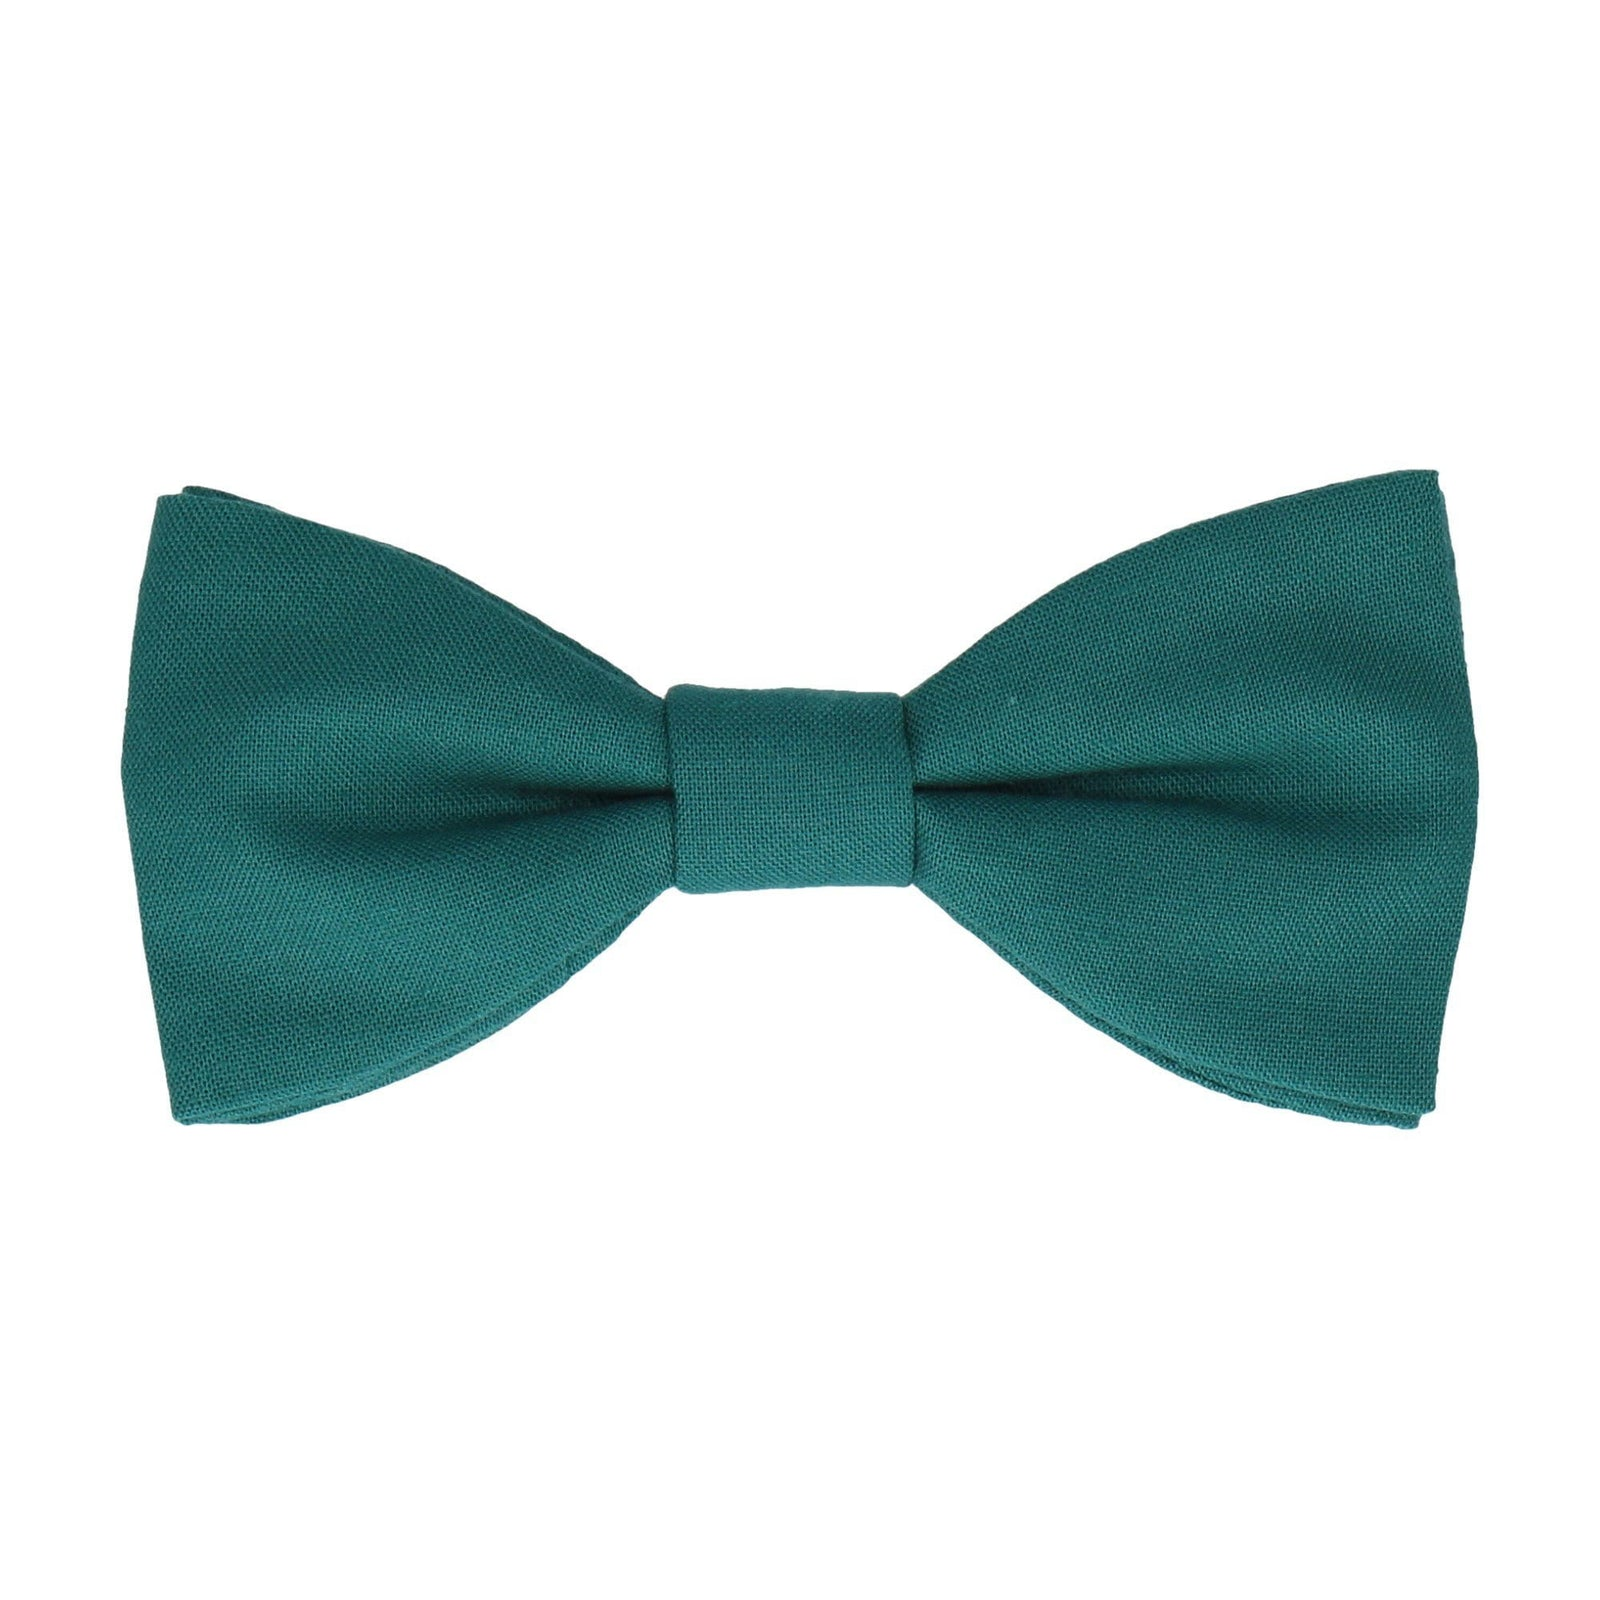 Cotton Everglade Green Bow Tie